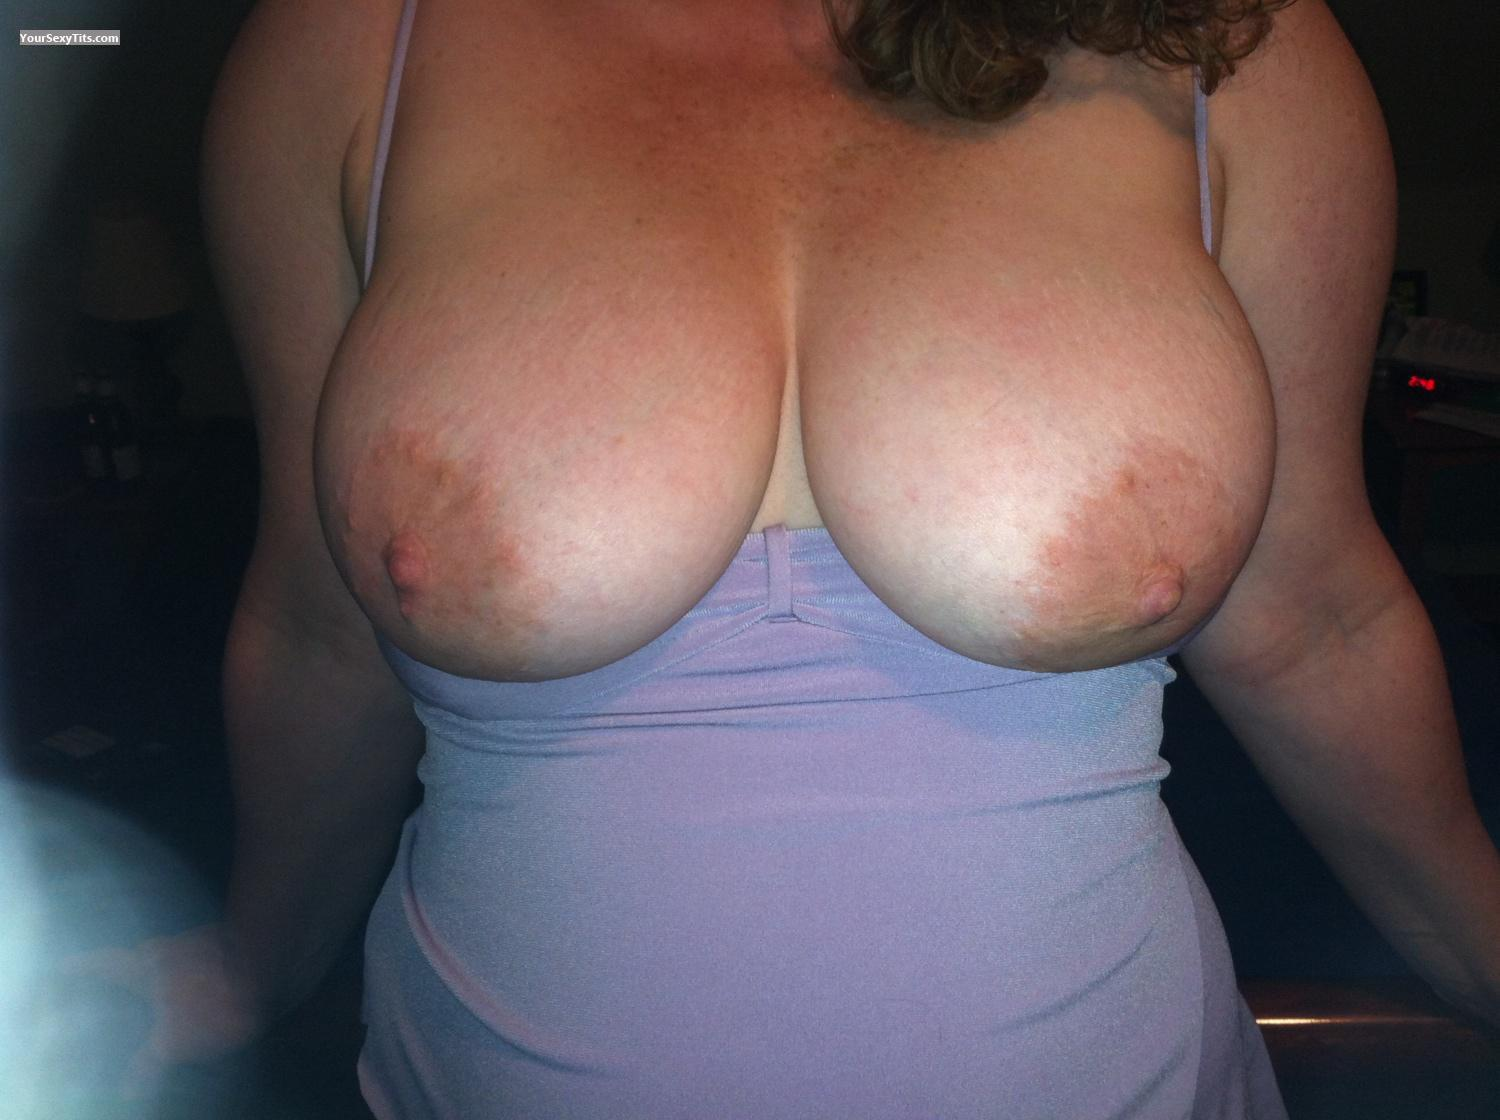 Tit Flash: Medium Tits By IPhone - Big Tits from United States